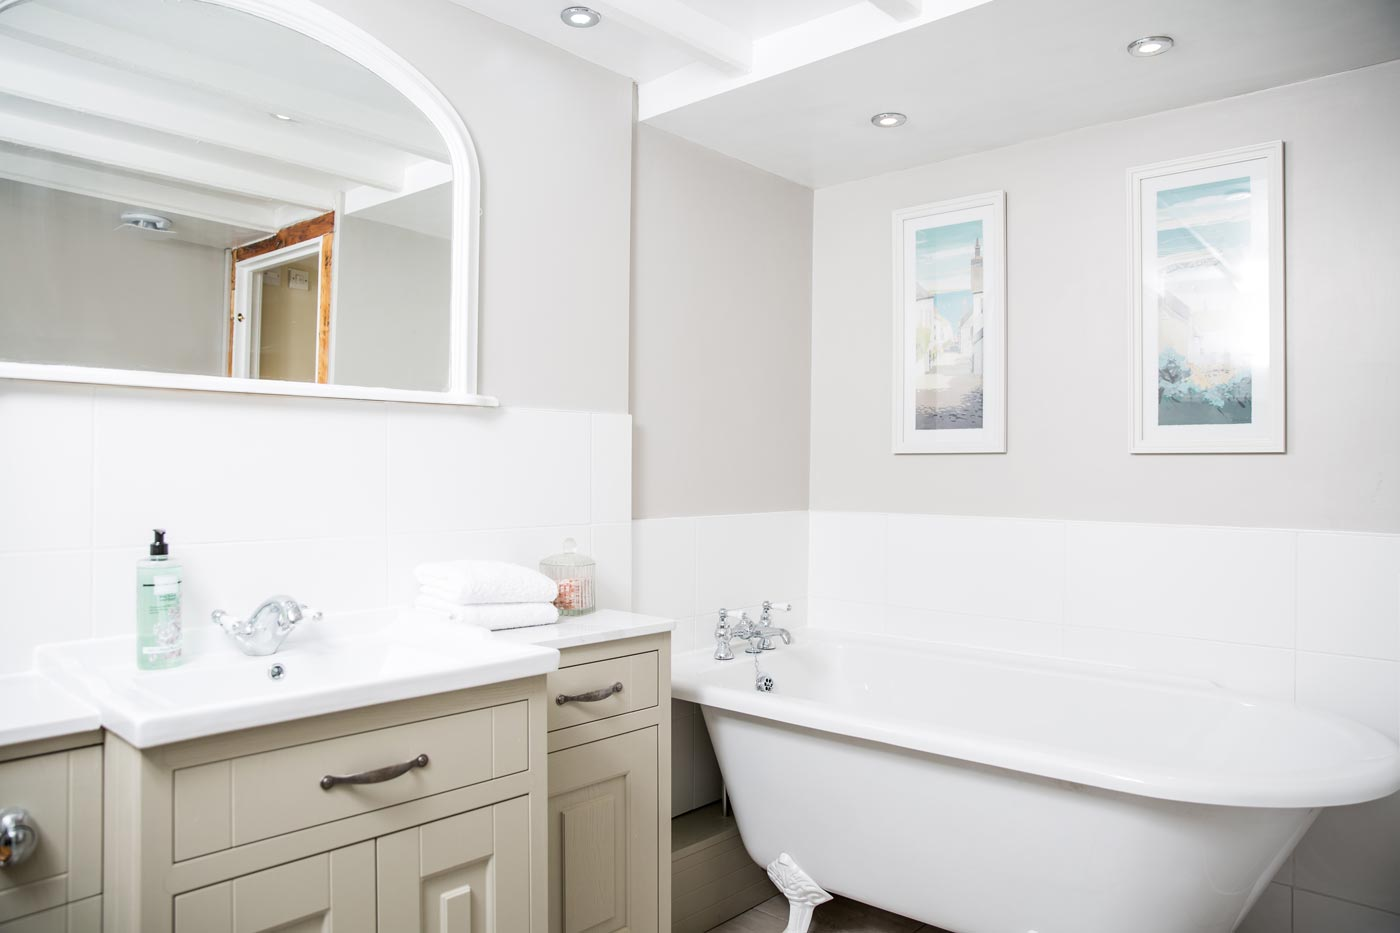 Stylish Family Bathroom - The family bathroom is situated on the ground floor with underfloor heating, a roll top bath and separate shower.